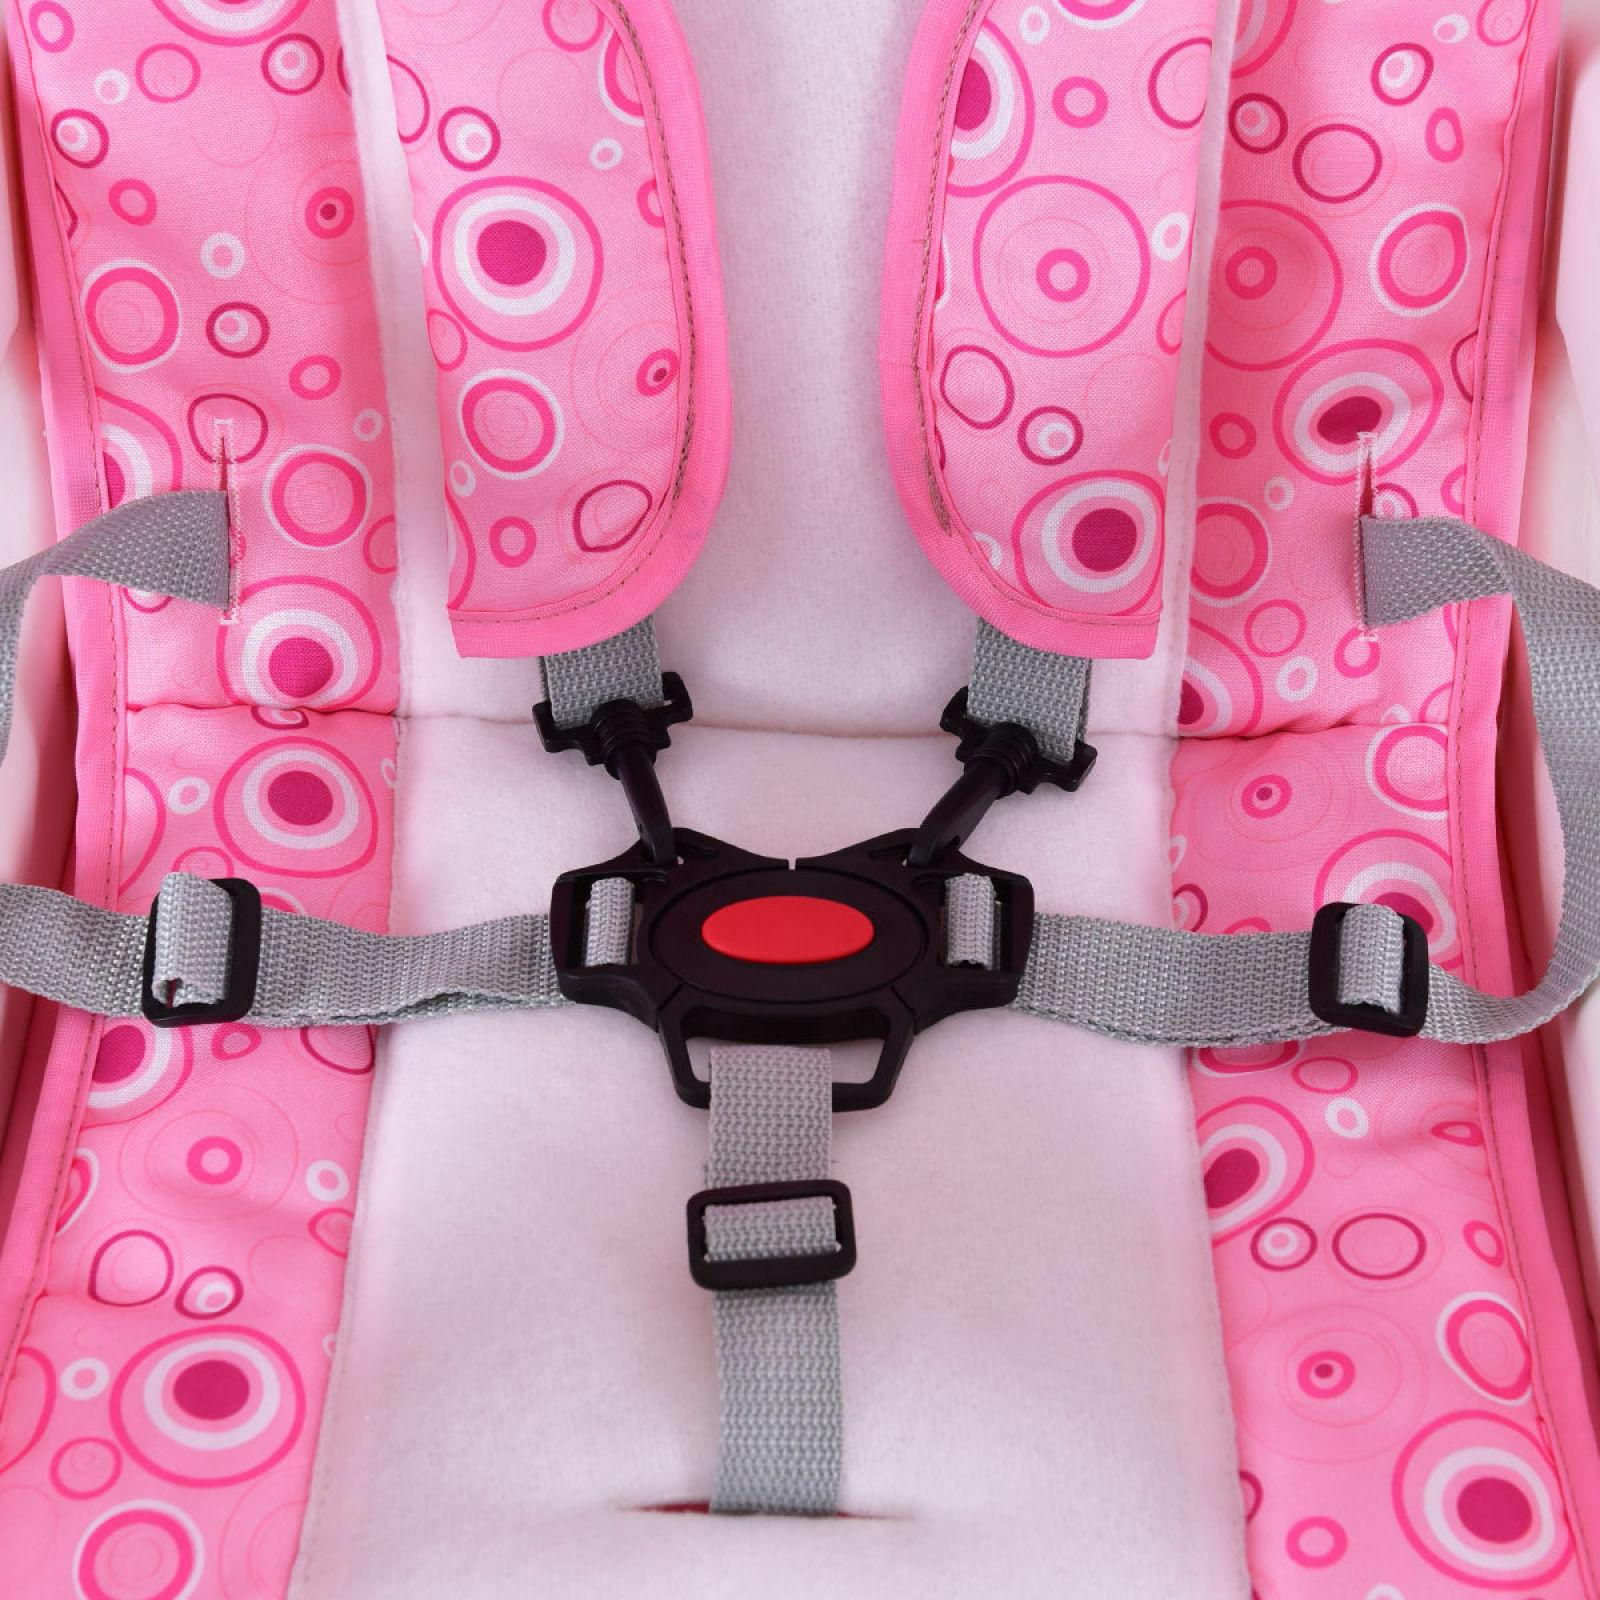 Costway 3 Baby High Chair Convertible Play Seat Toddler Pink